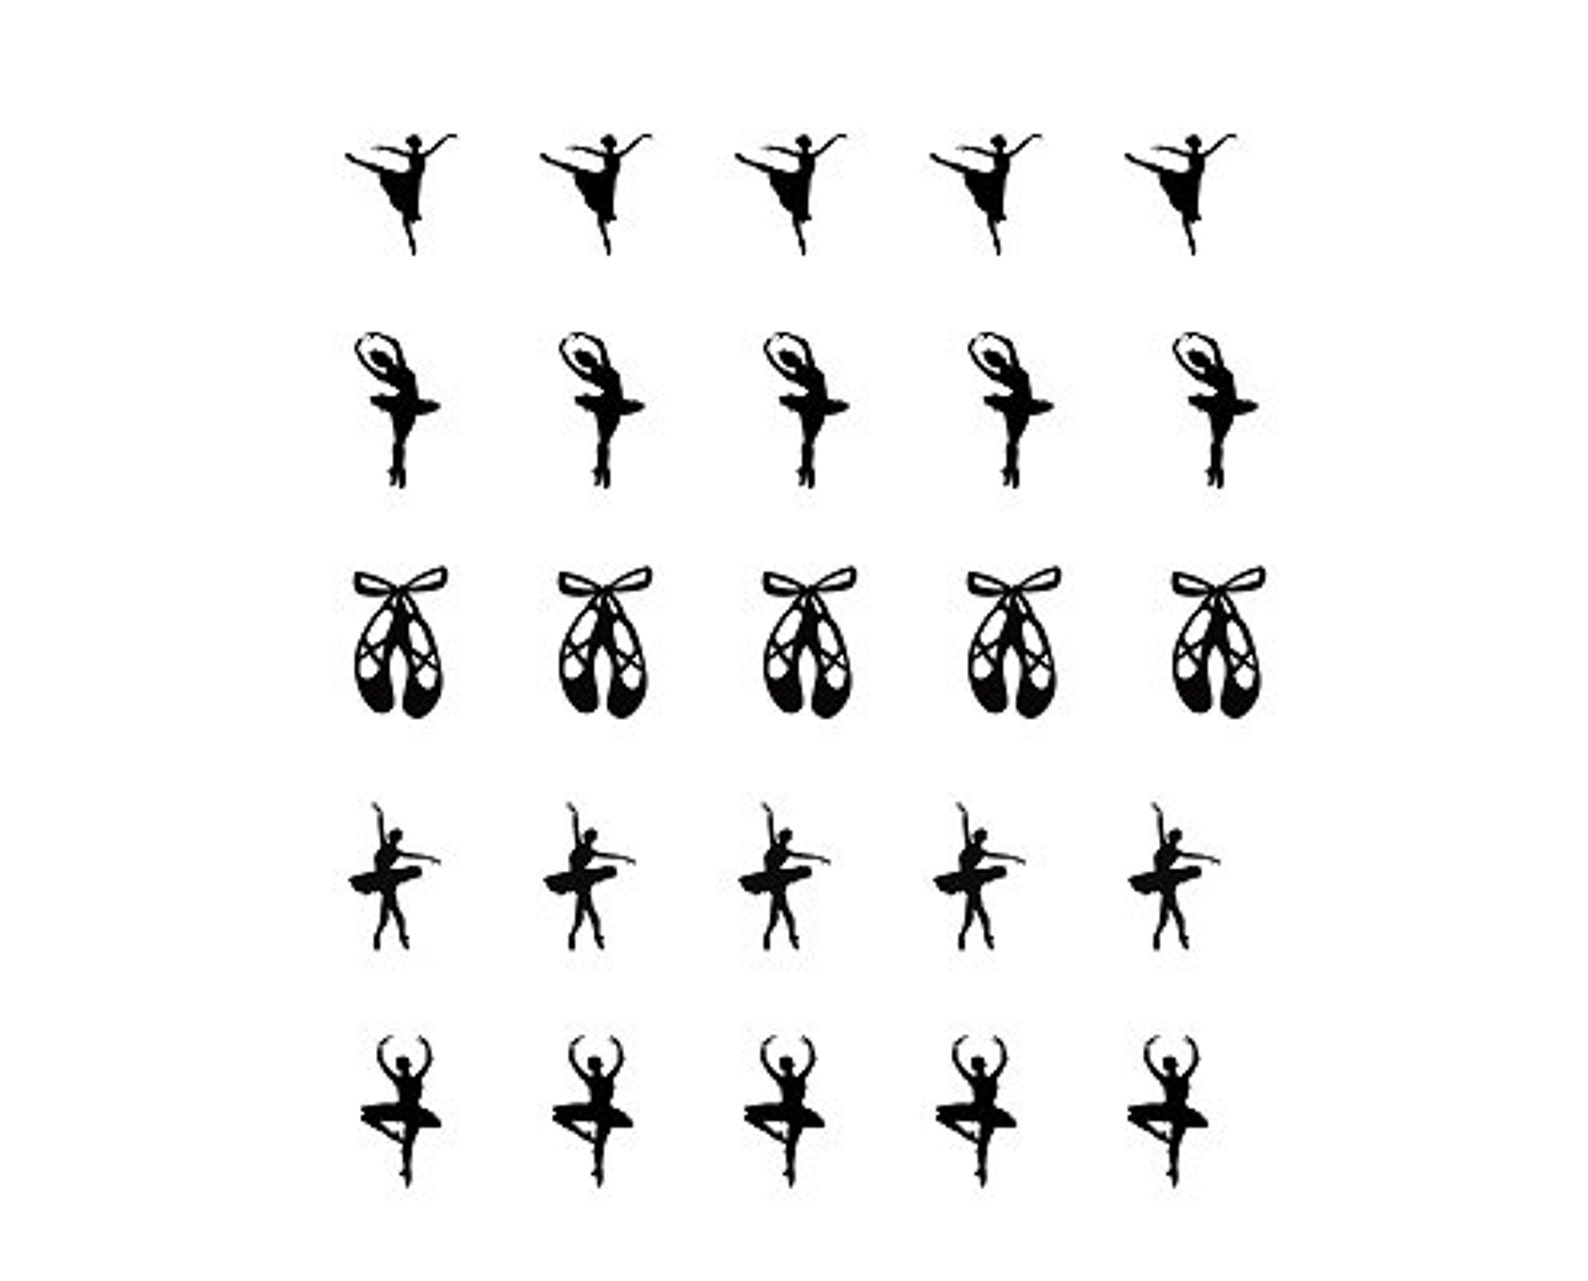 ballet theme nail decals - dance, ballerina, silhouette, slippers, shoes, bow, black, shadow - nail art stickers - 25 designs